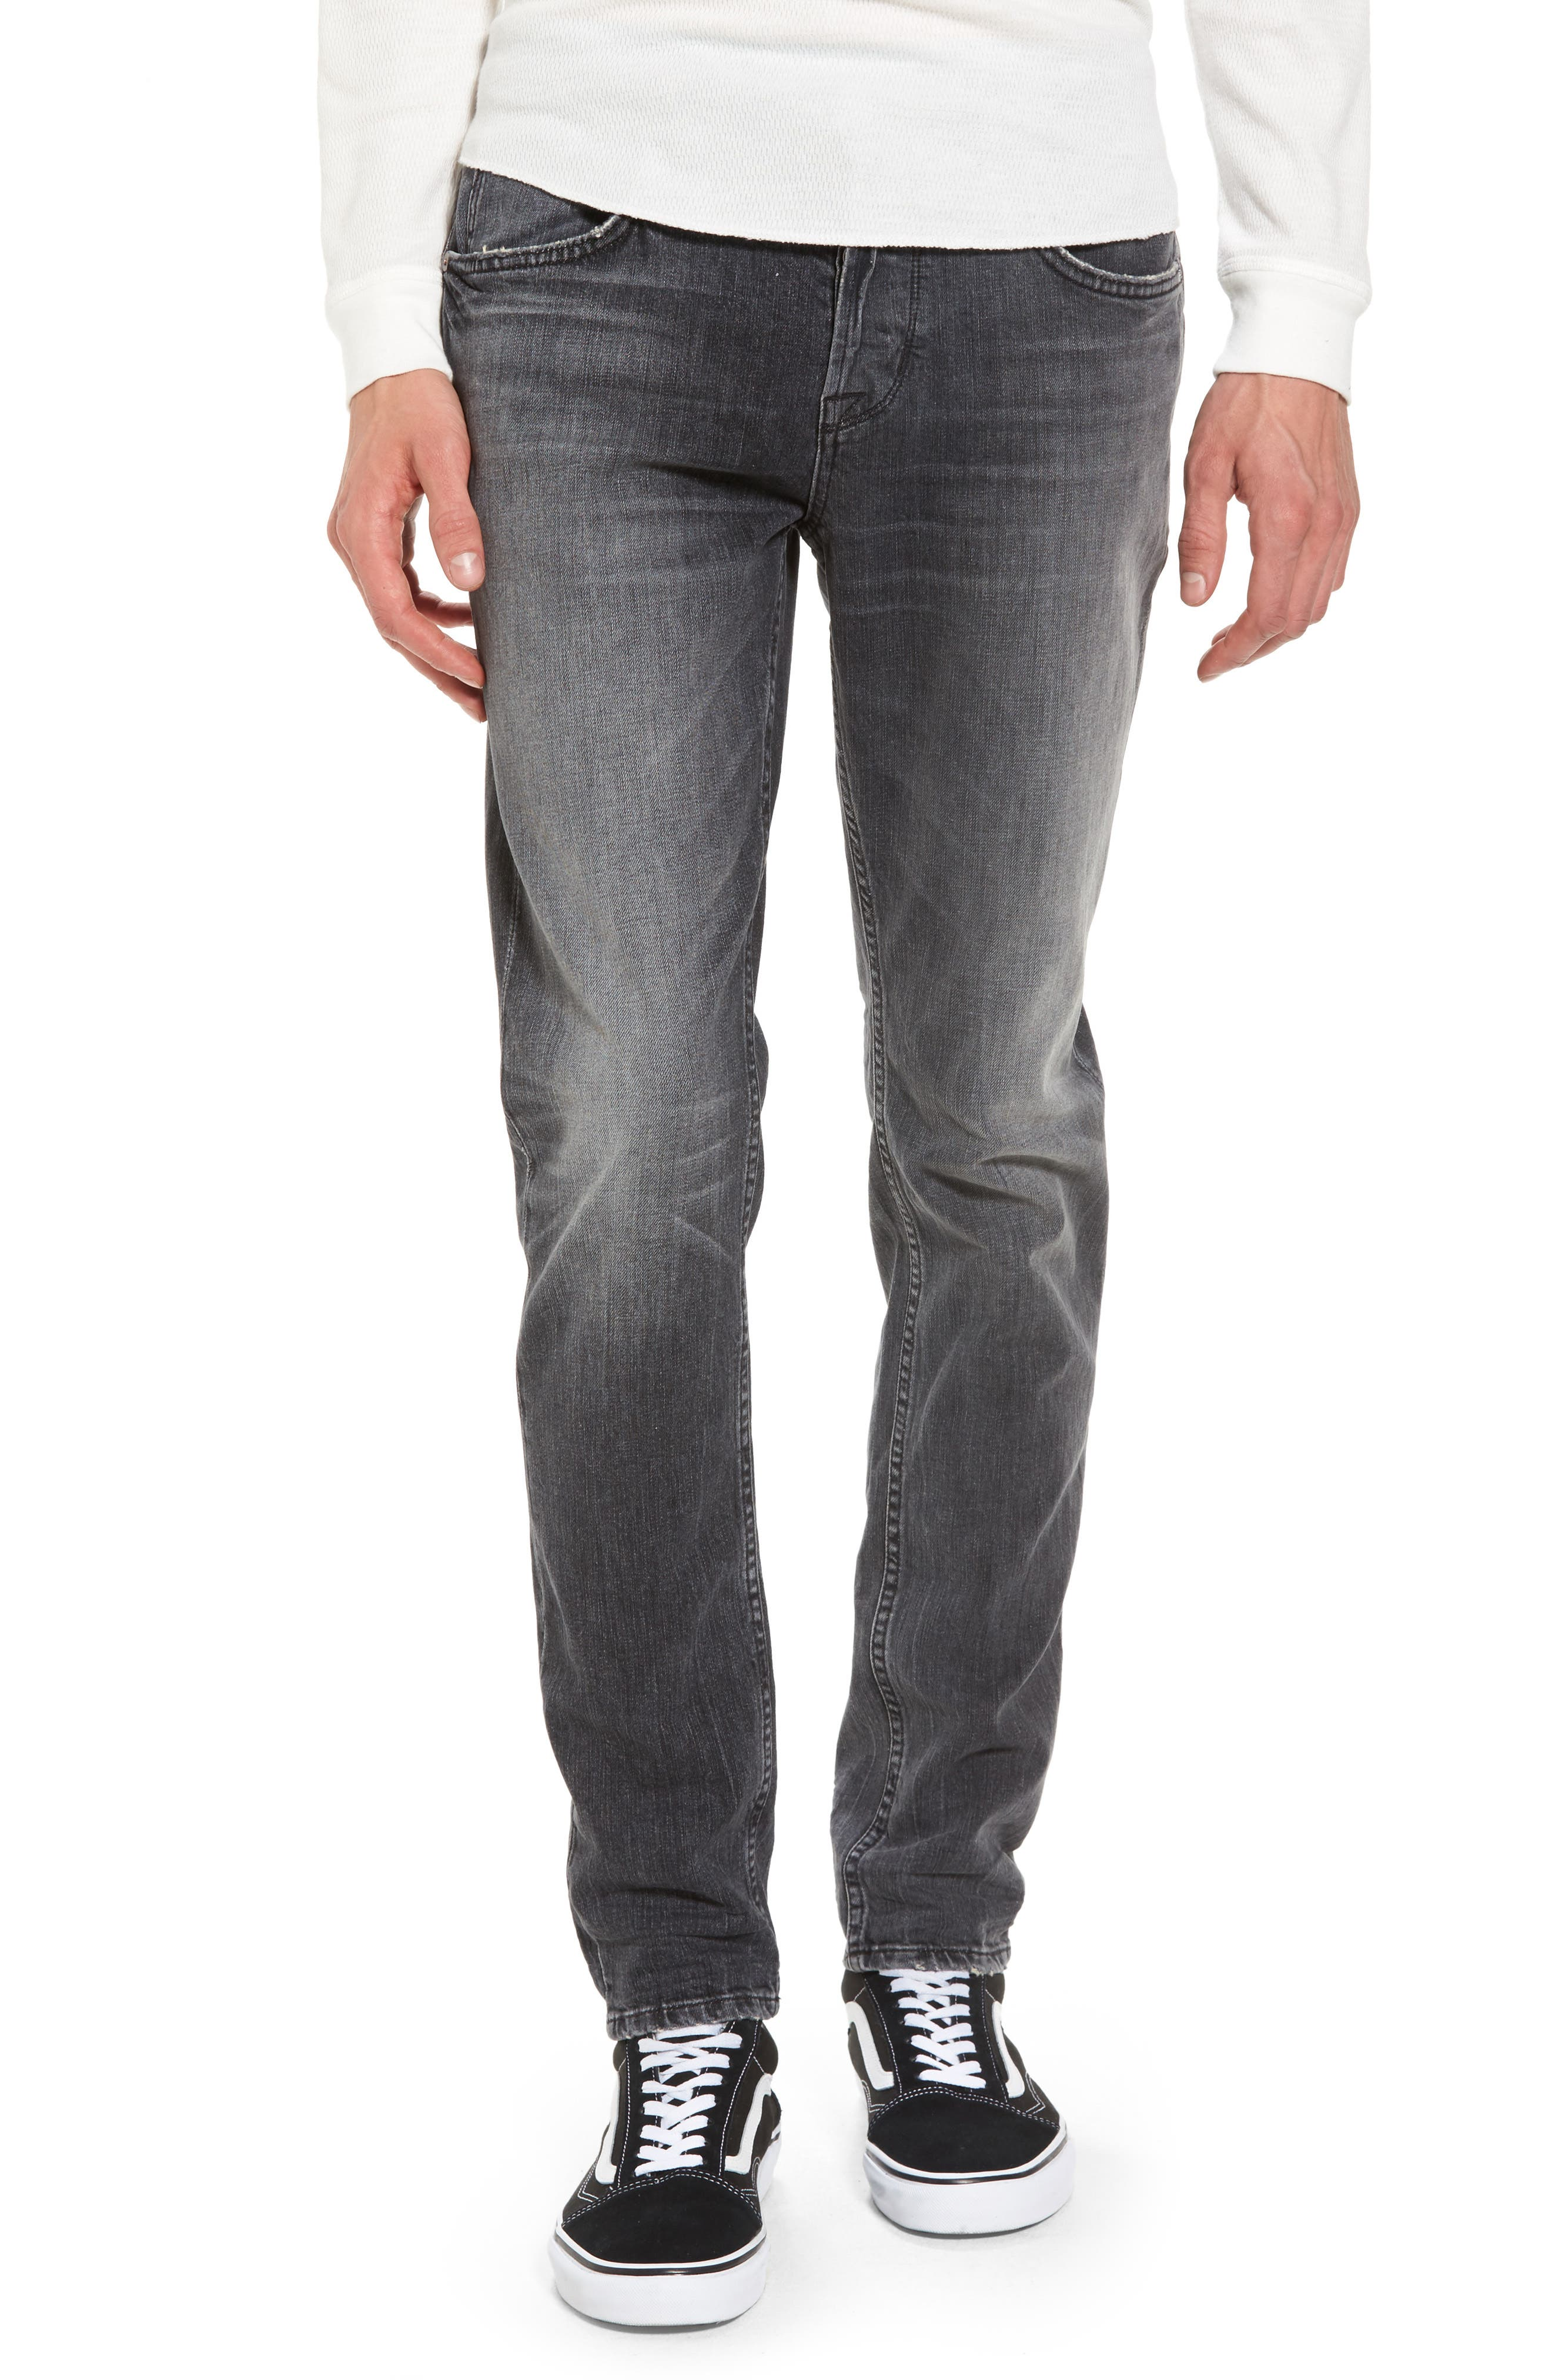 Main Image - Hudson Jeans Axl Skinny Fit Jeans (Venture)